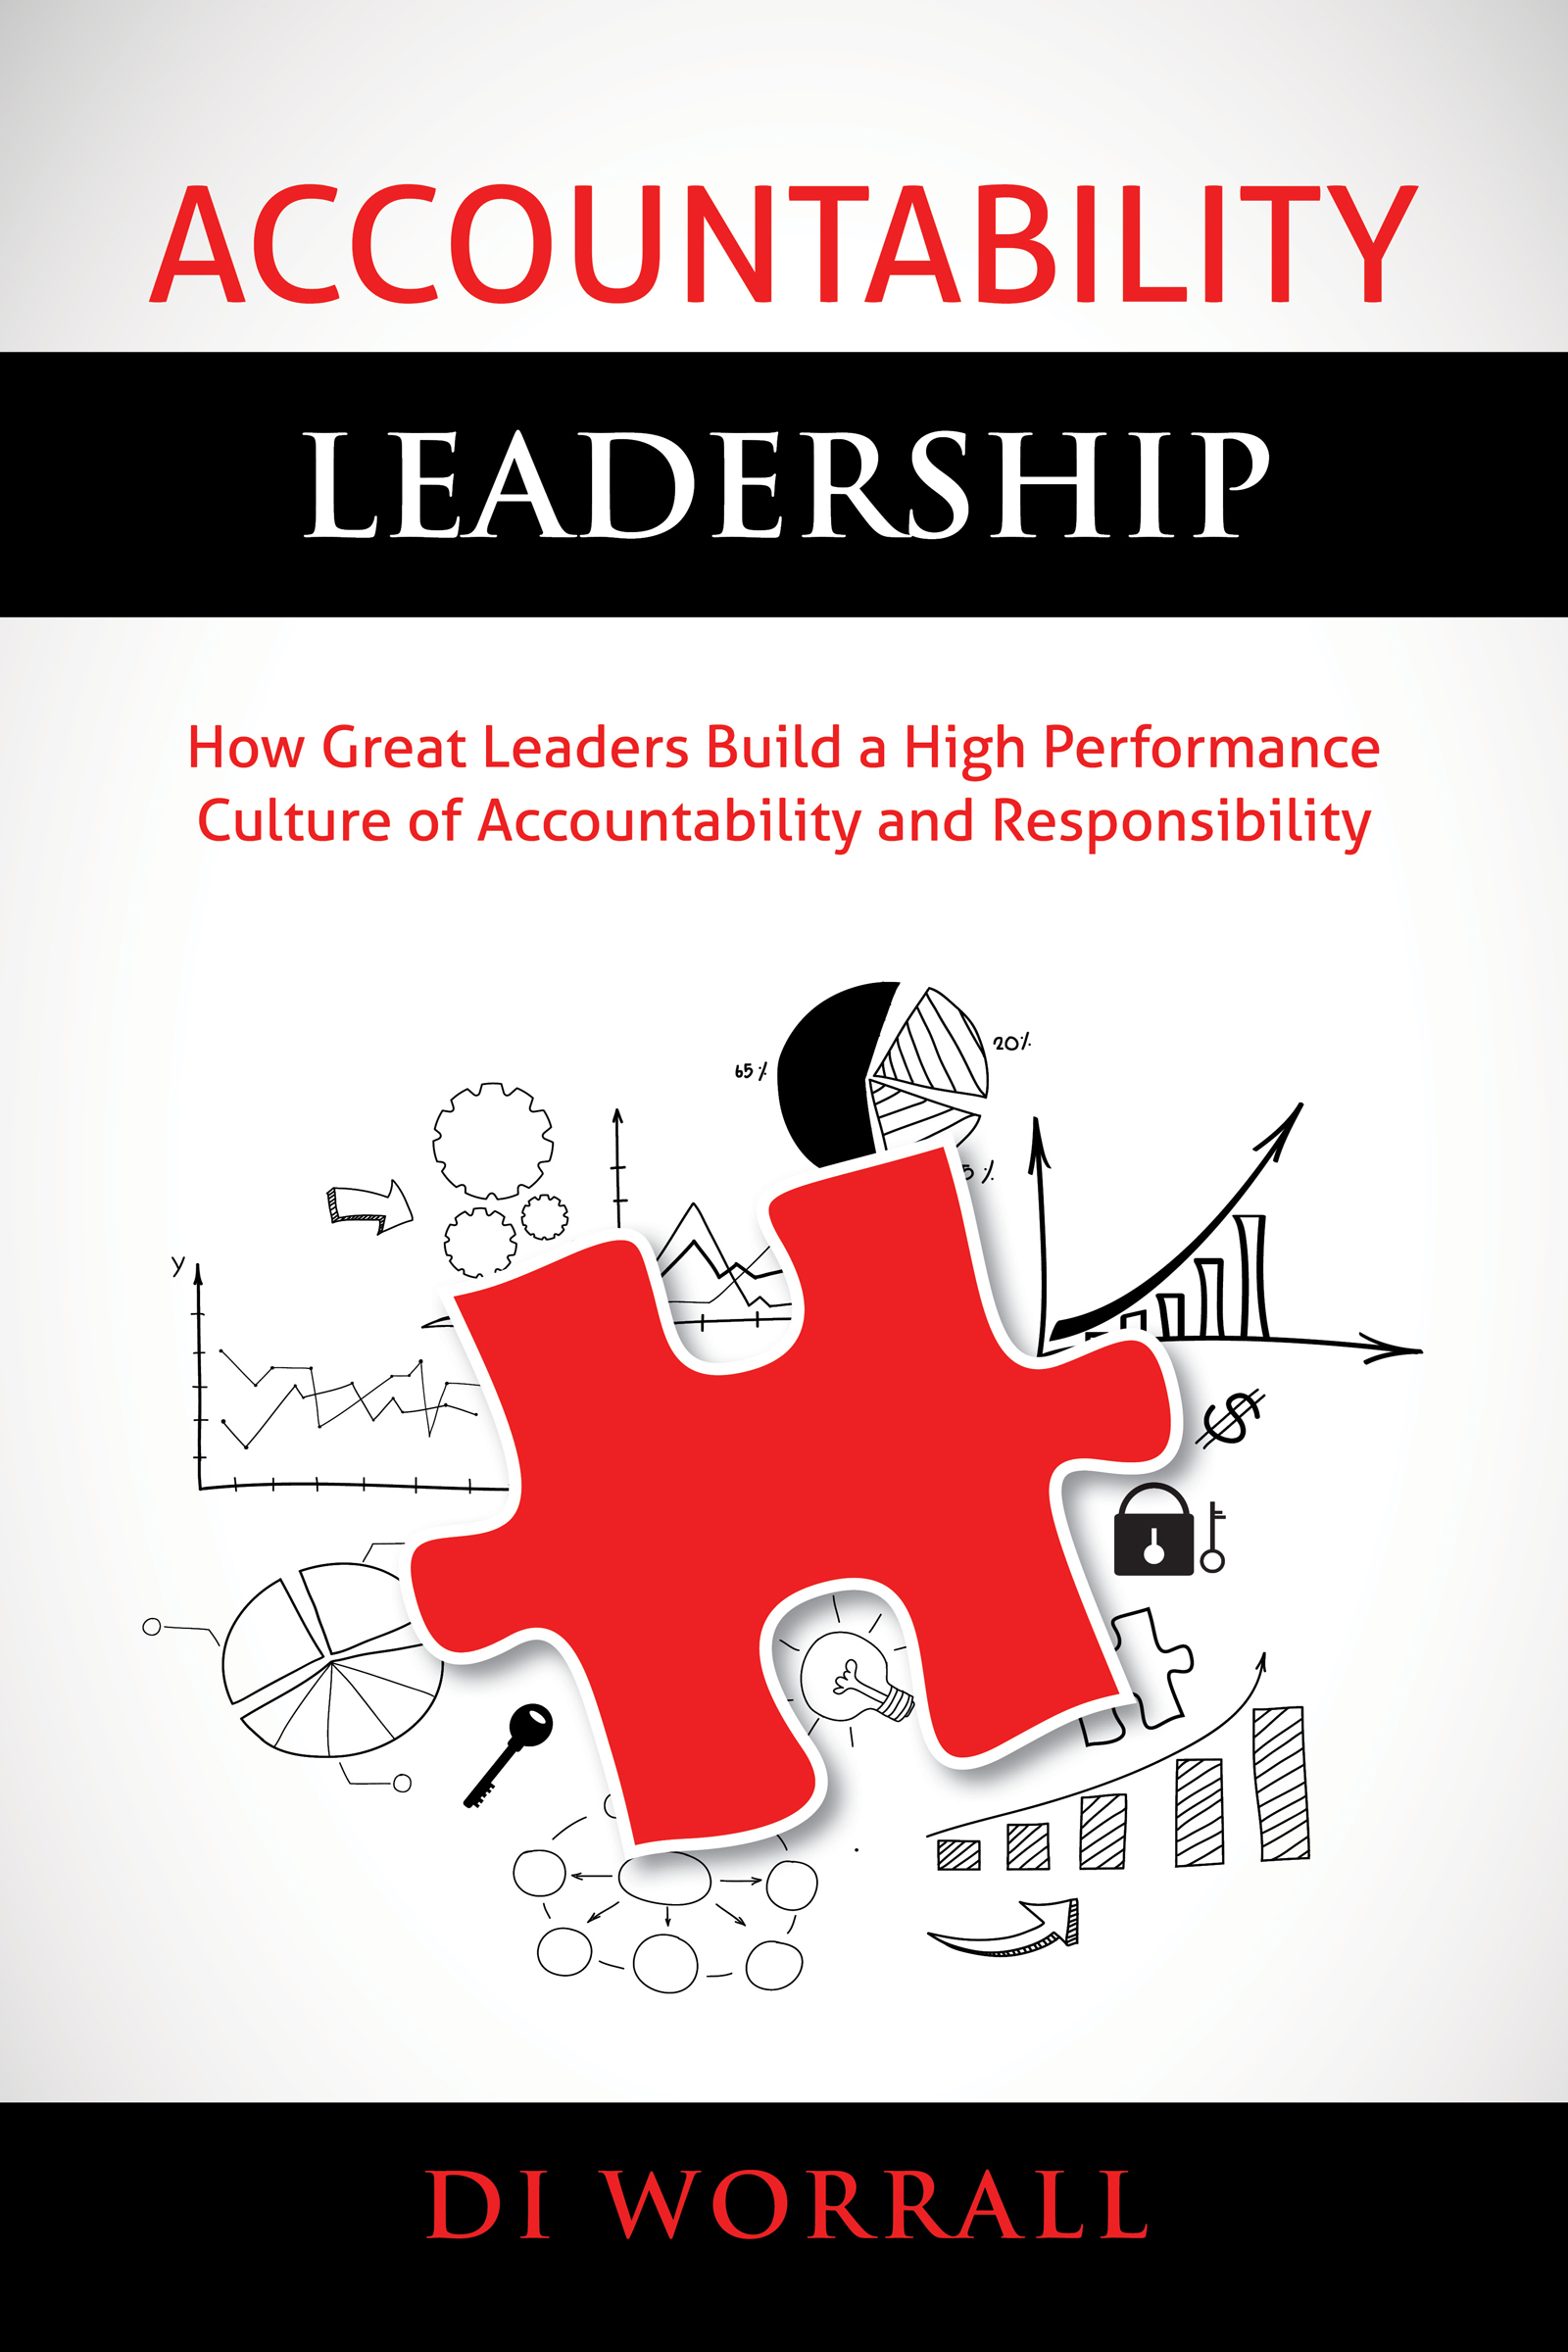 Accountability Leadership: How Great Leaders Build a High Performance Culture of Accountability and Responsibility (The Accountability Code Series, Paperback Edition #1)